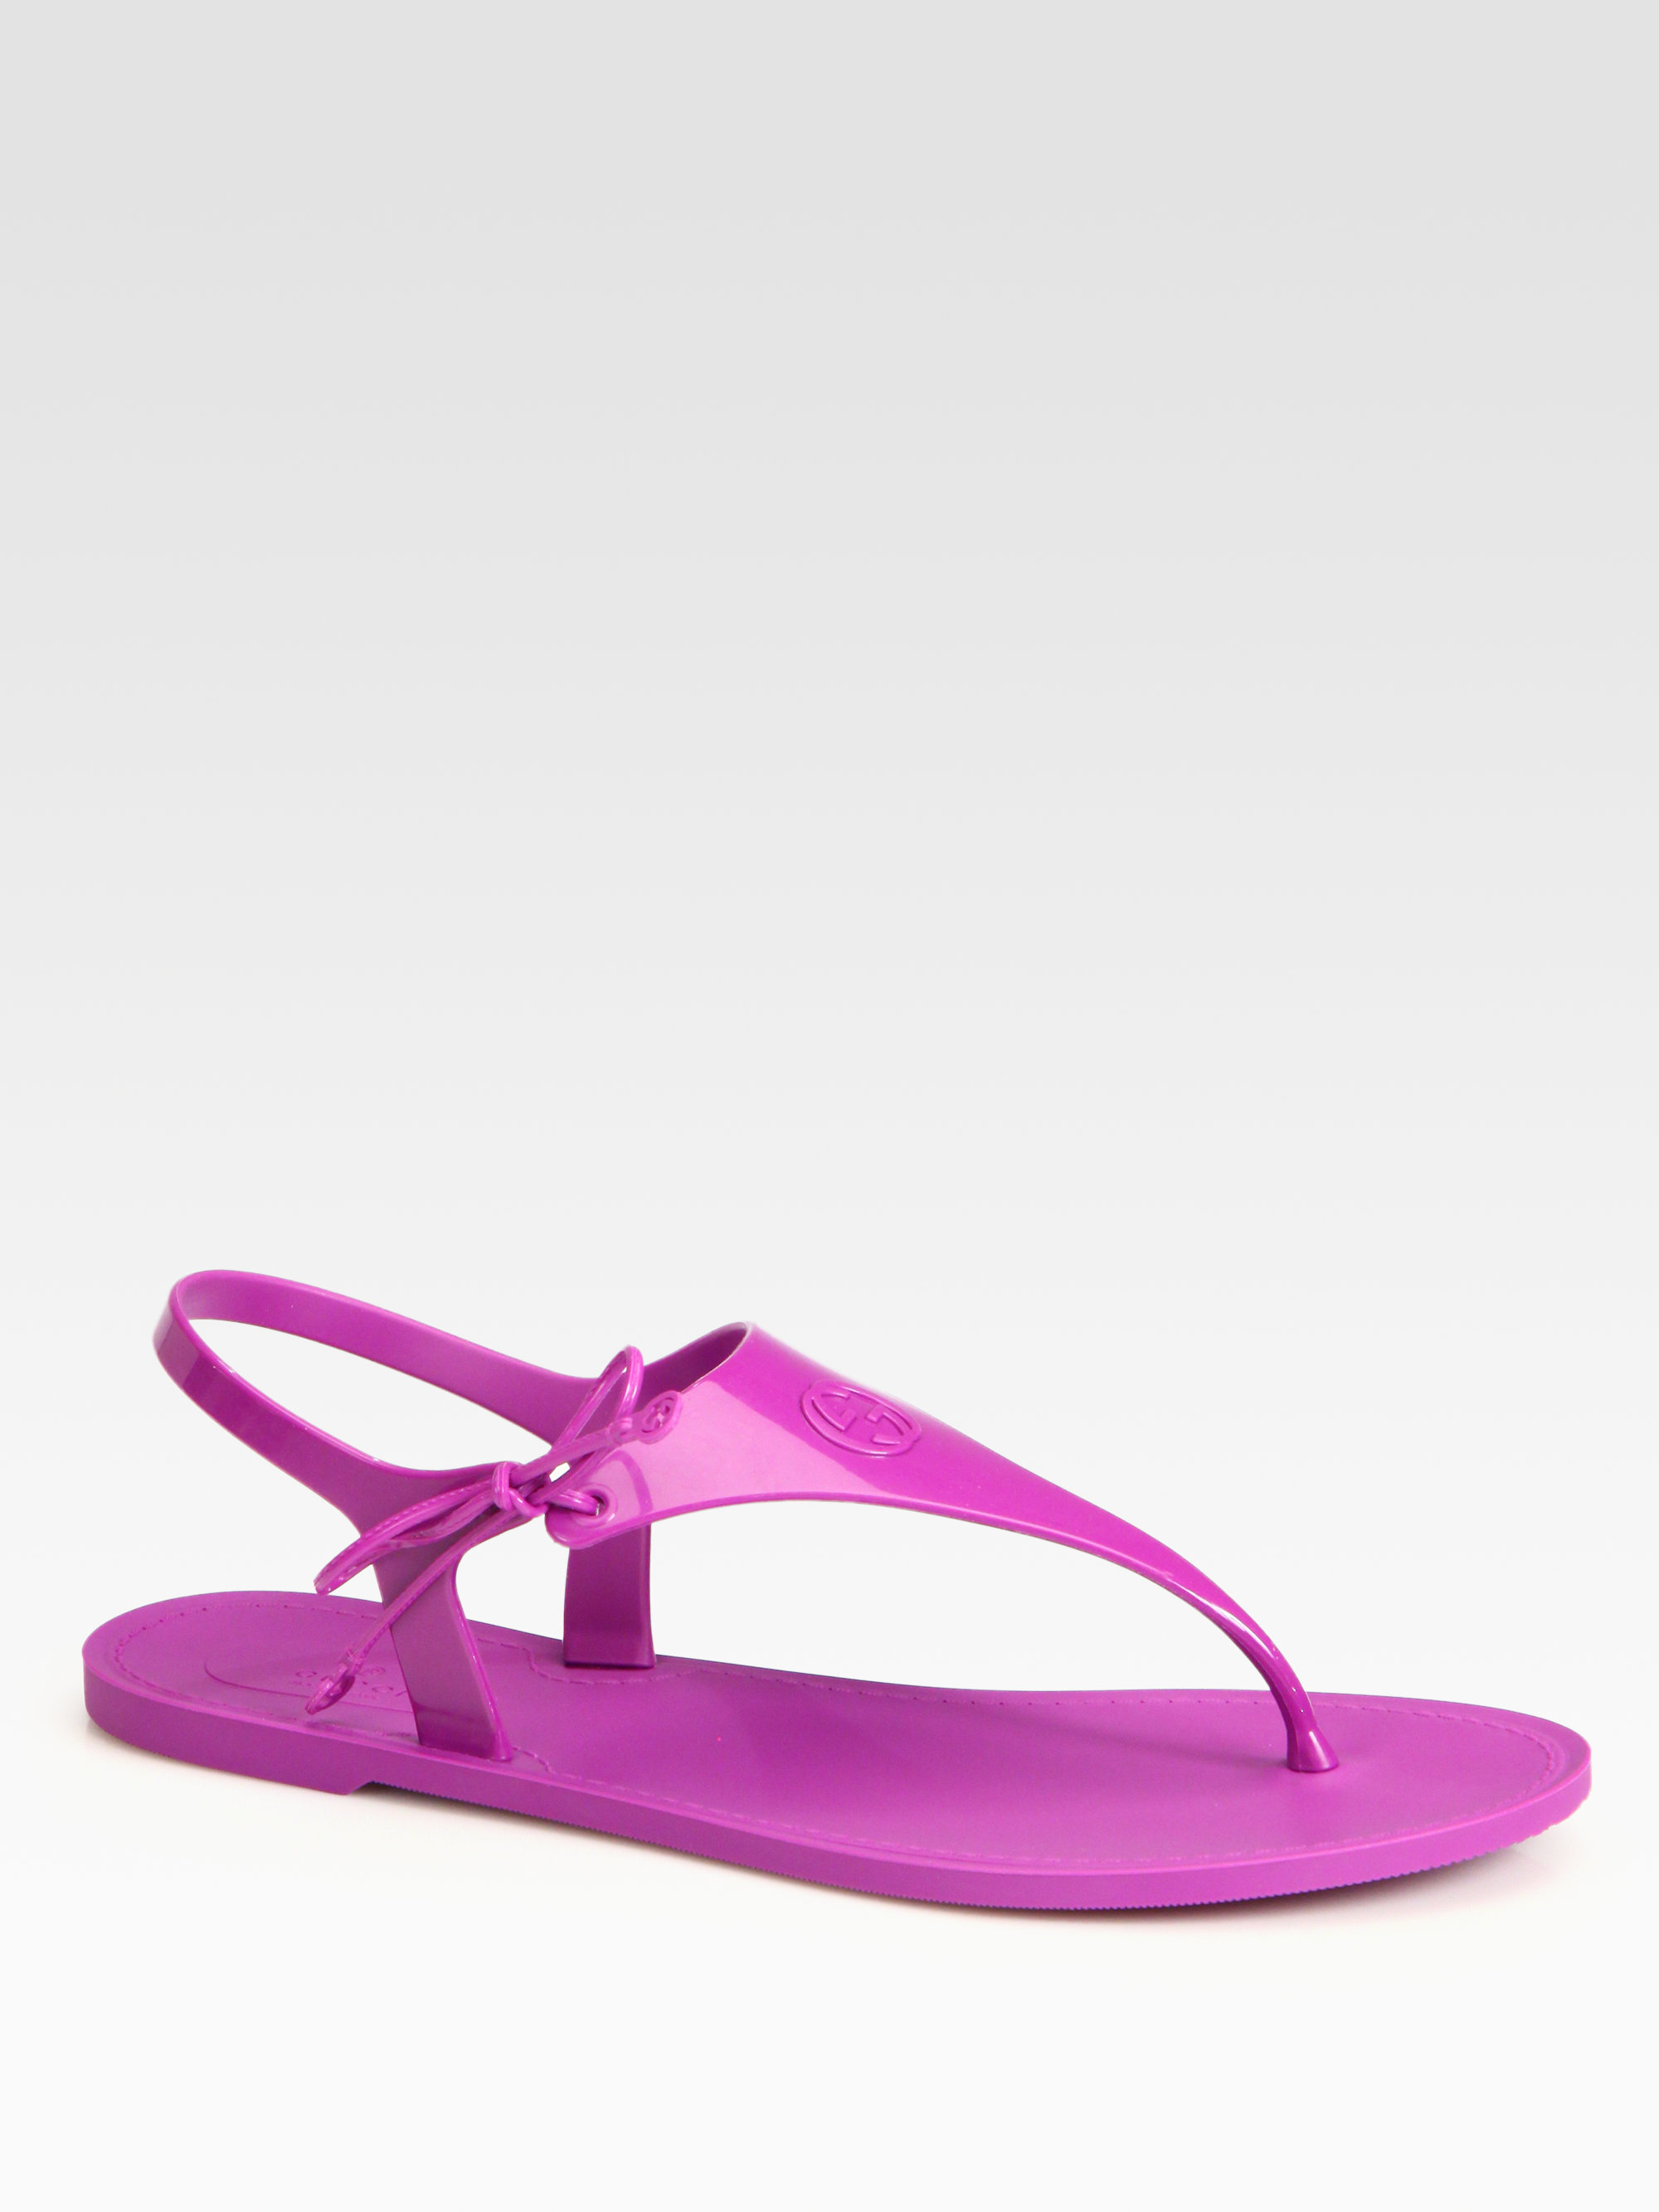 3f43e3fcea05 Lyst - Gucci Katina Rubber Thong Sandals in Purple